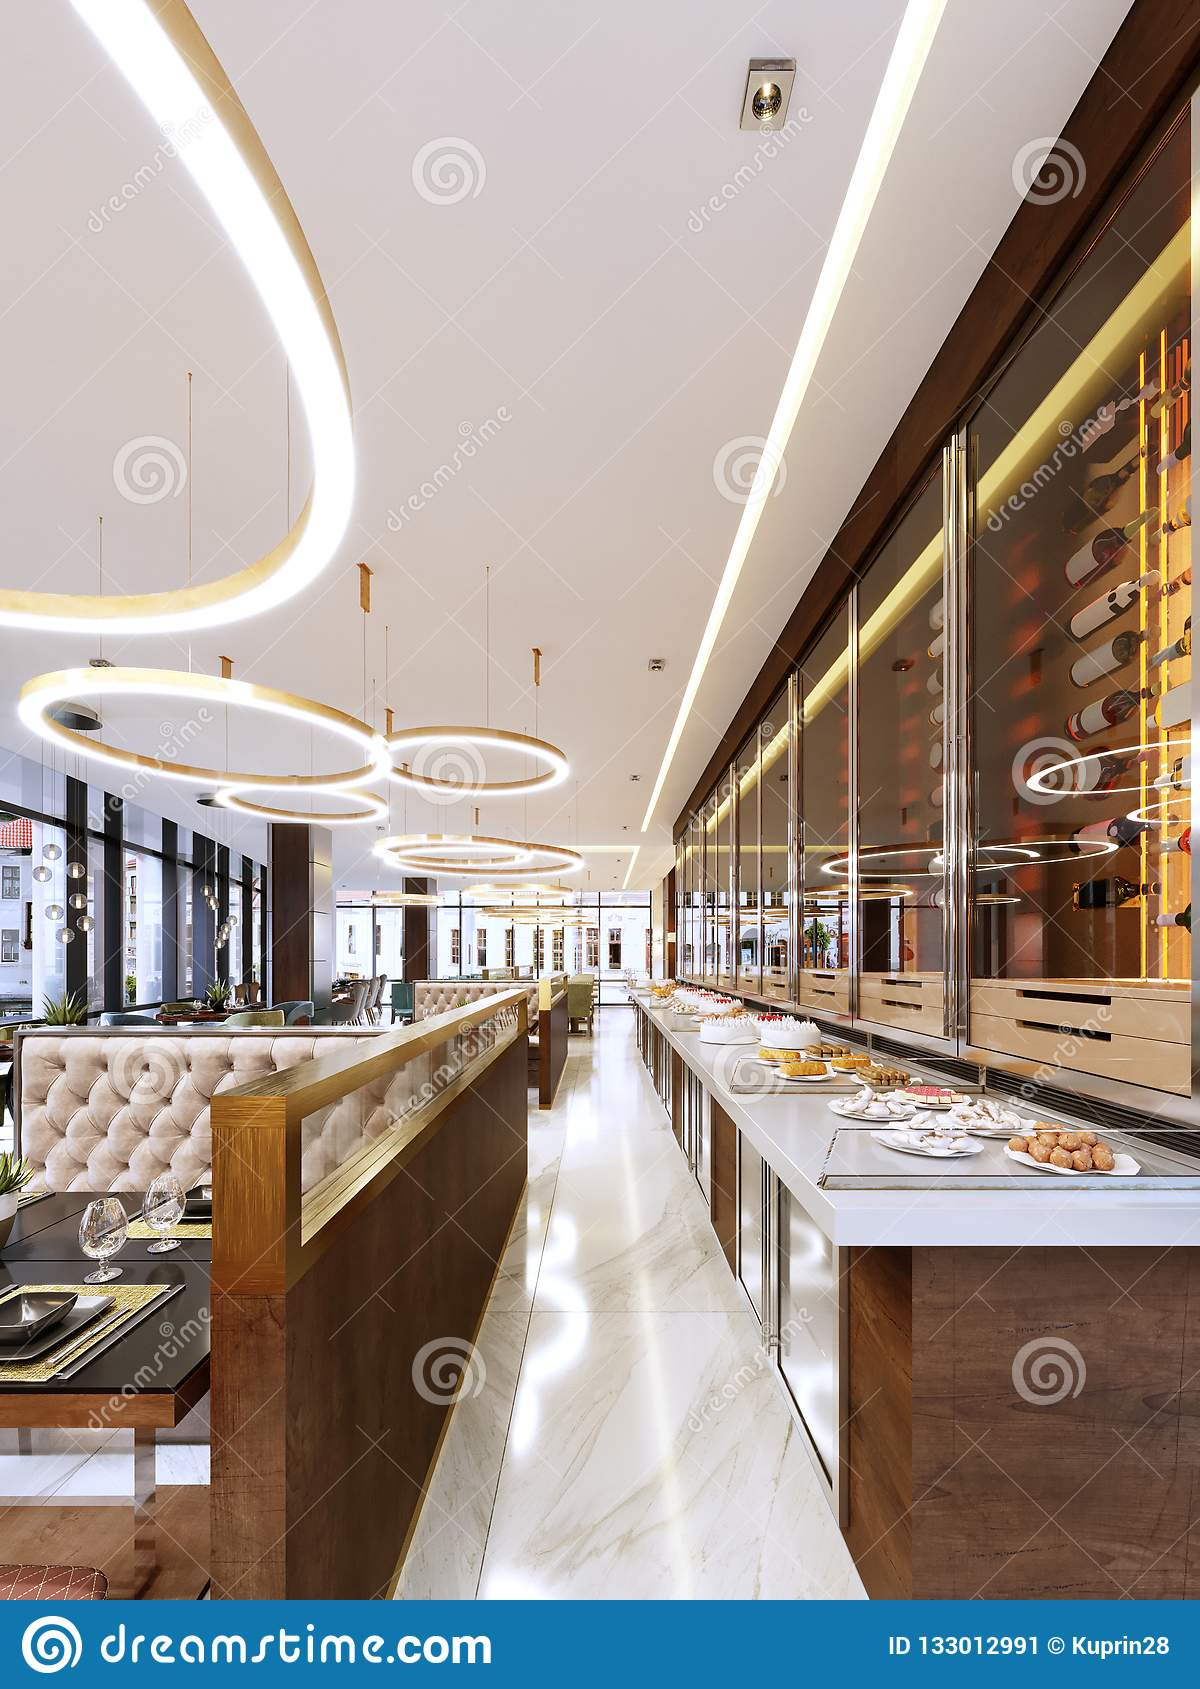 Decorative Wall In Modern Restaurant With Bottles Under Glass With Light Wine Bottle Cooler Restaurant Design Stock Illustration Illustration Of Drink Lamp 133012991